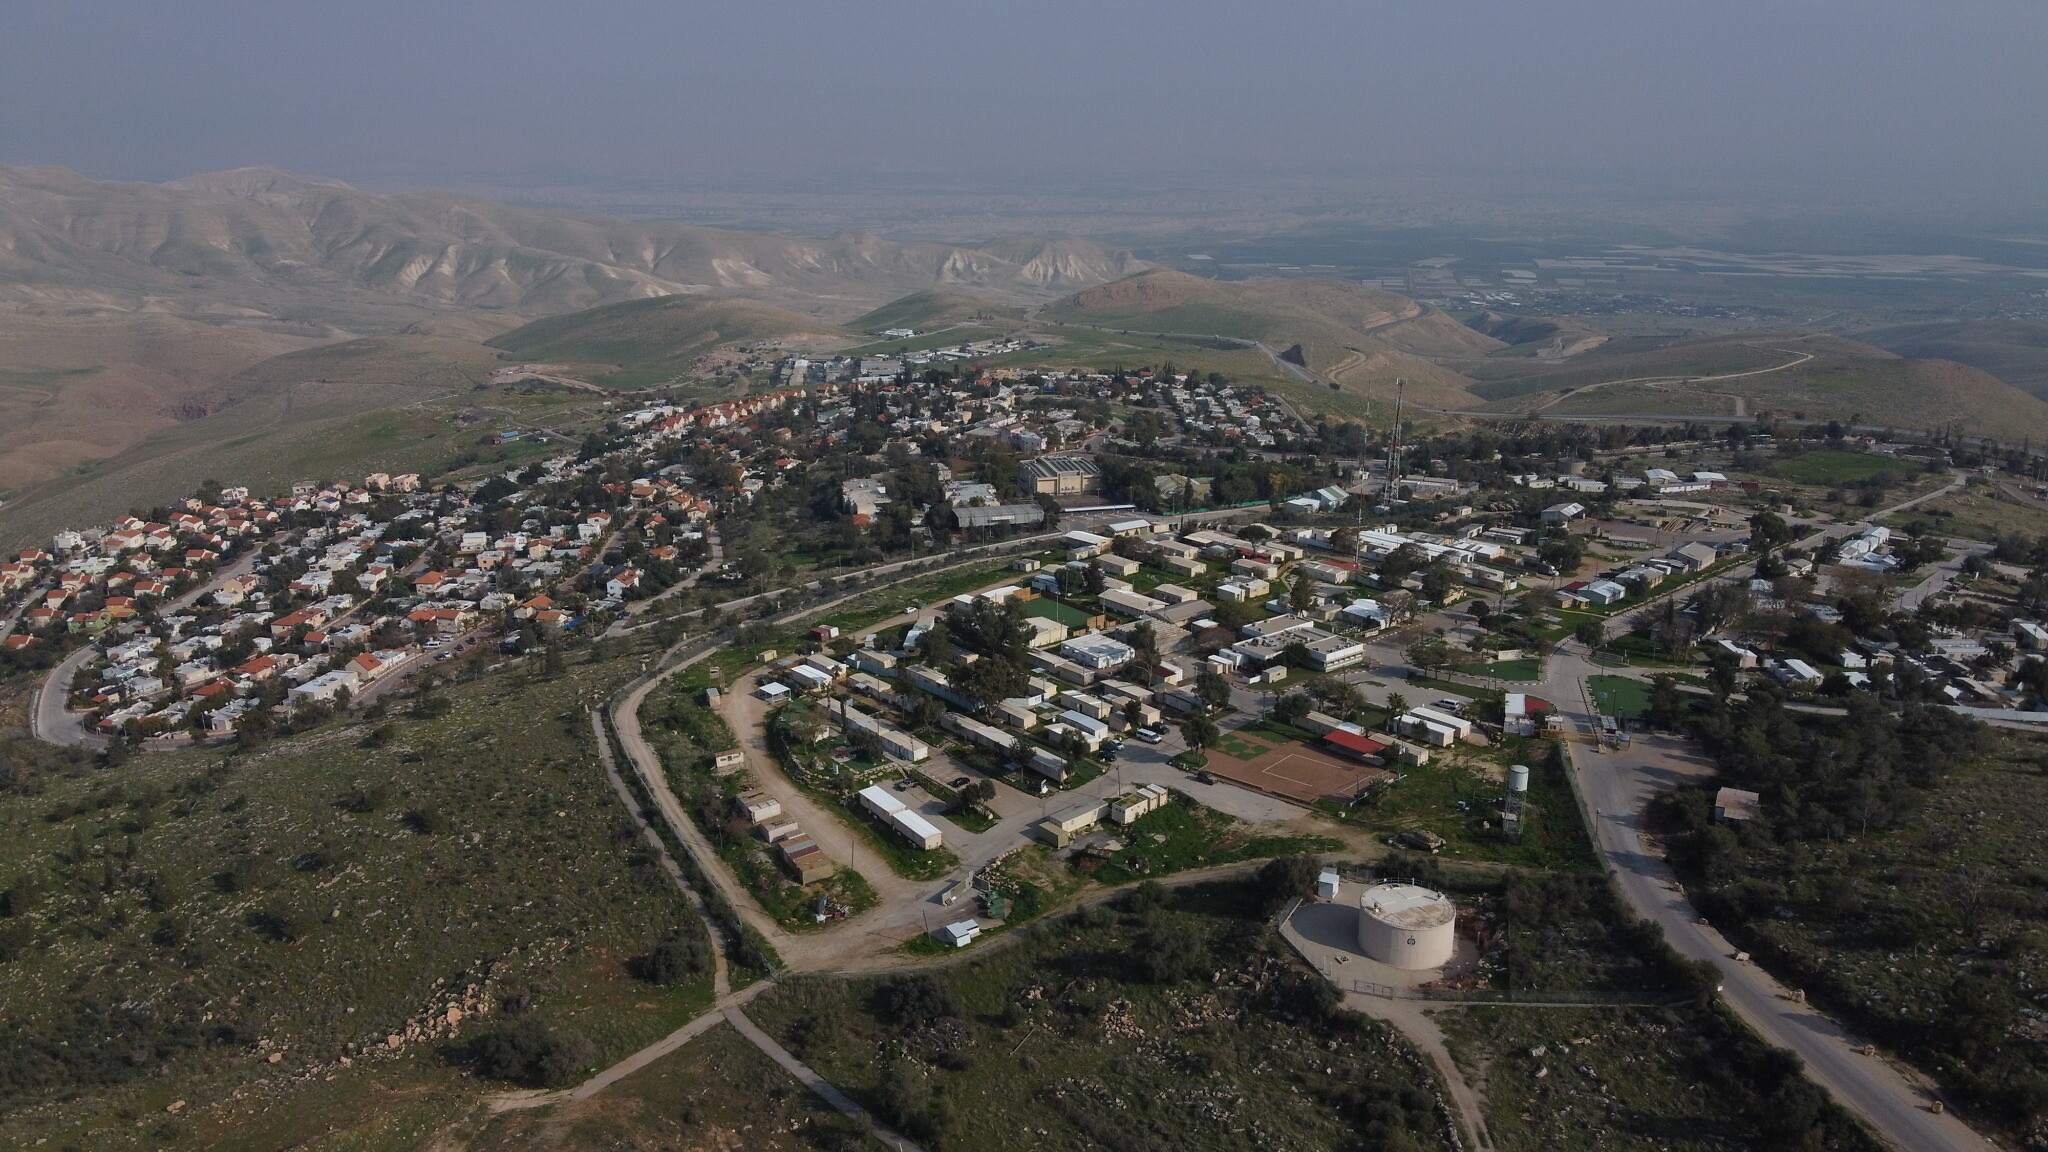 The West Bank settlement of Ma'ale Ephraim in the hills overlooking the Jordan Valley,  February 18, 2020. (AP Photo/Ariel Schalit)